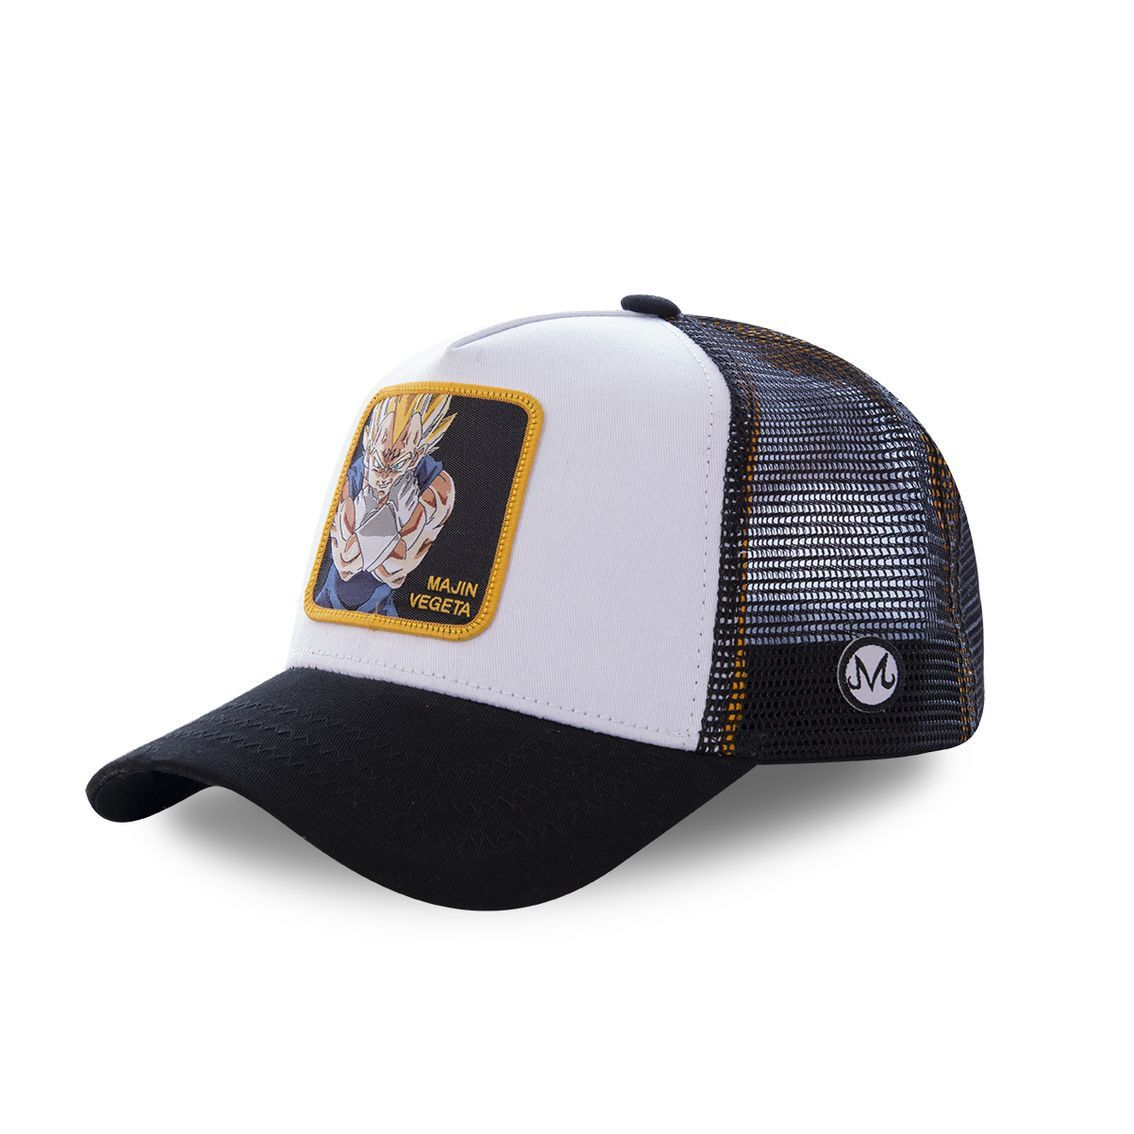 Casquette capslab dragon ball z mâjin vegeta blanc et noir (photo)